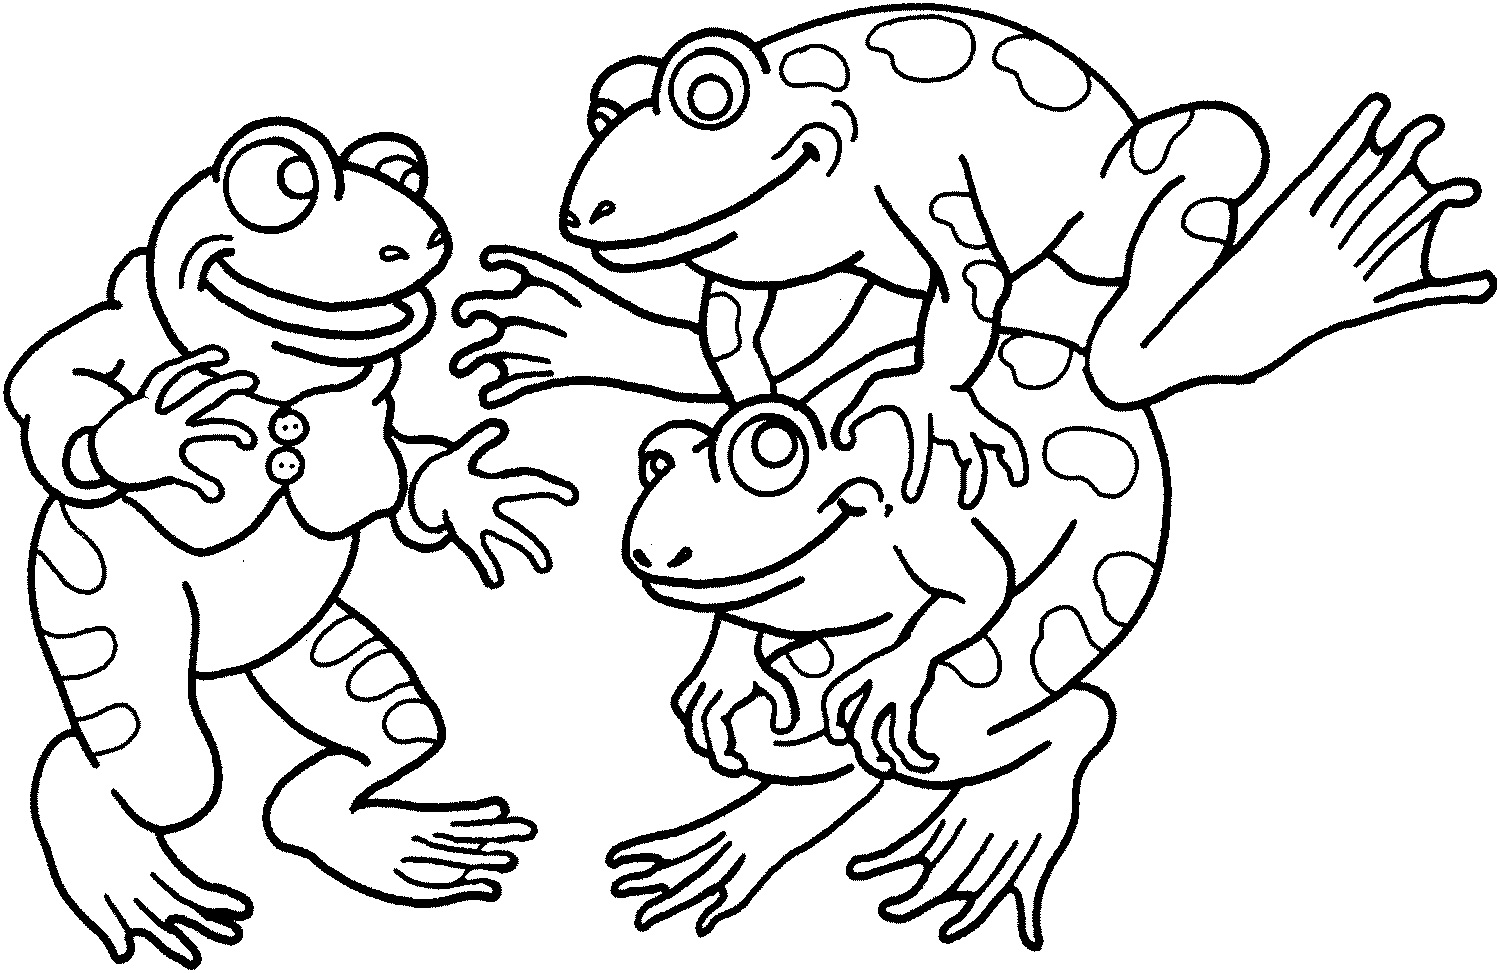 frog coloring pages for toddlers - photo#11